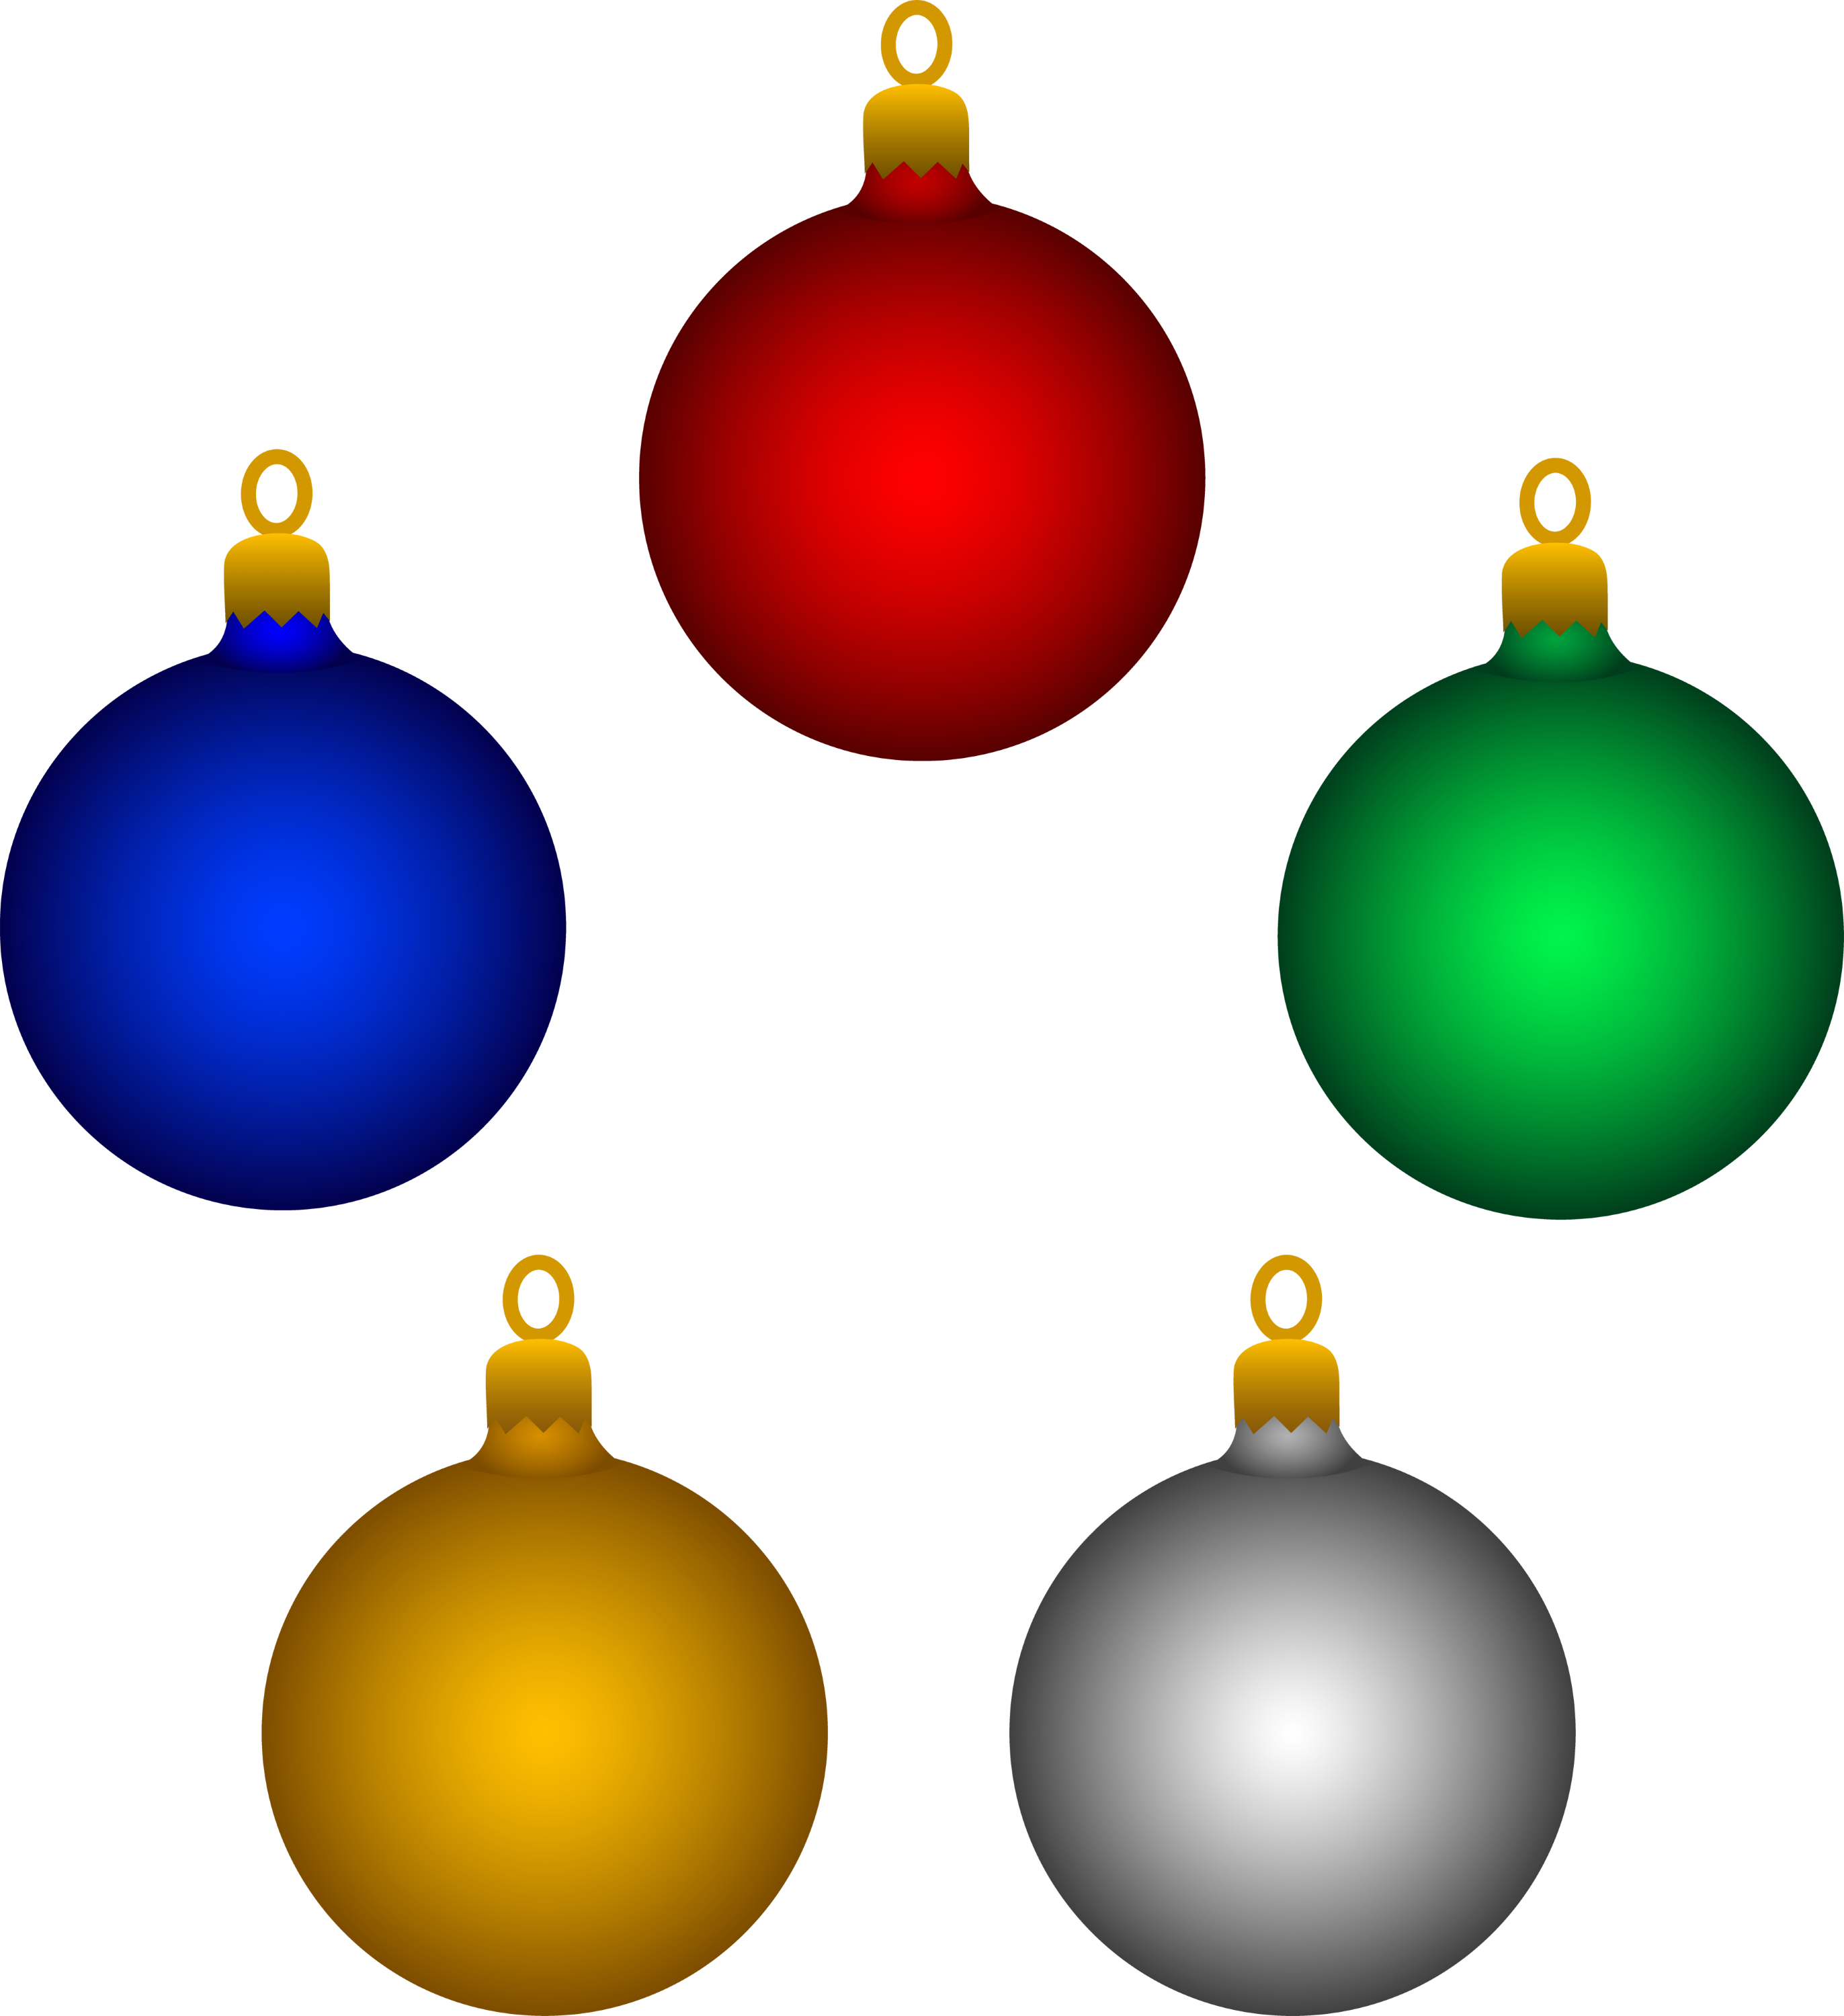 Christmas decorations clipart images - Set Of Five Colorful Holiday Ornaments